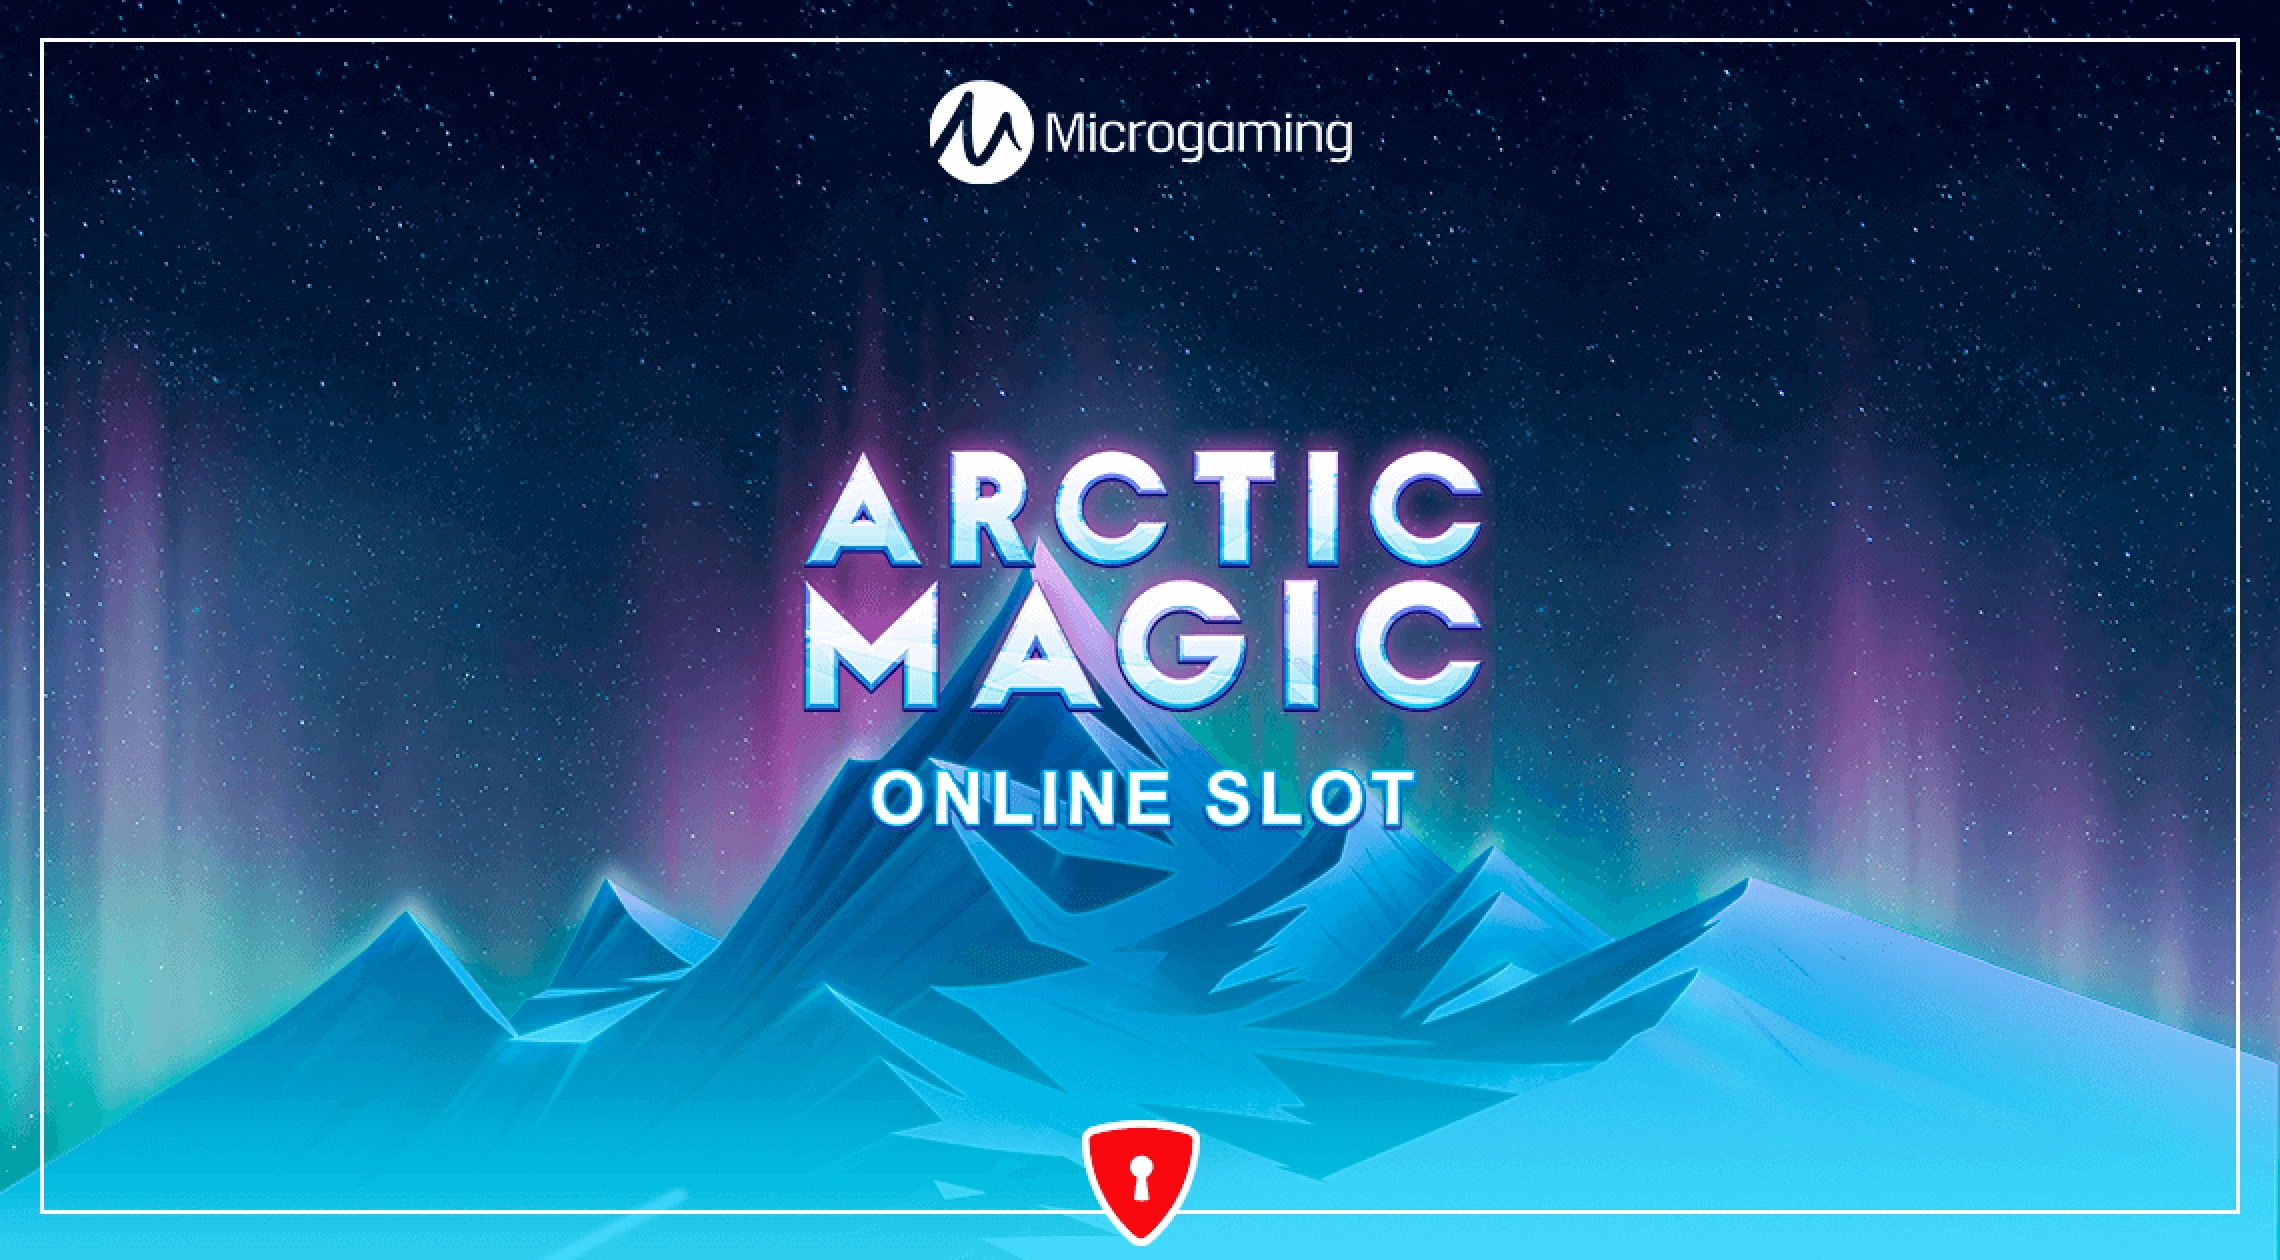 The Arctic Magic Online Slot Demo Game by Microgaming